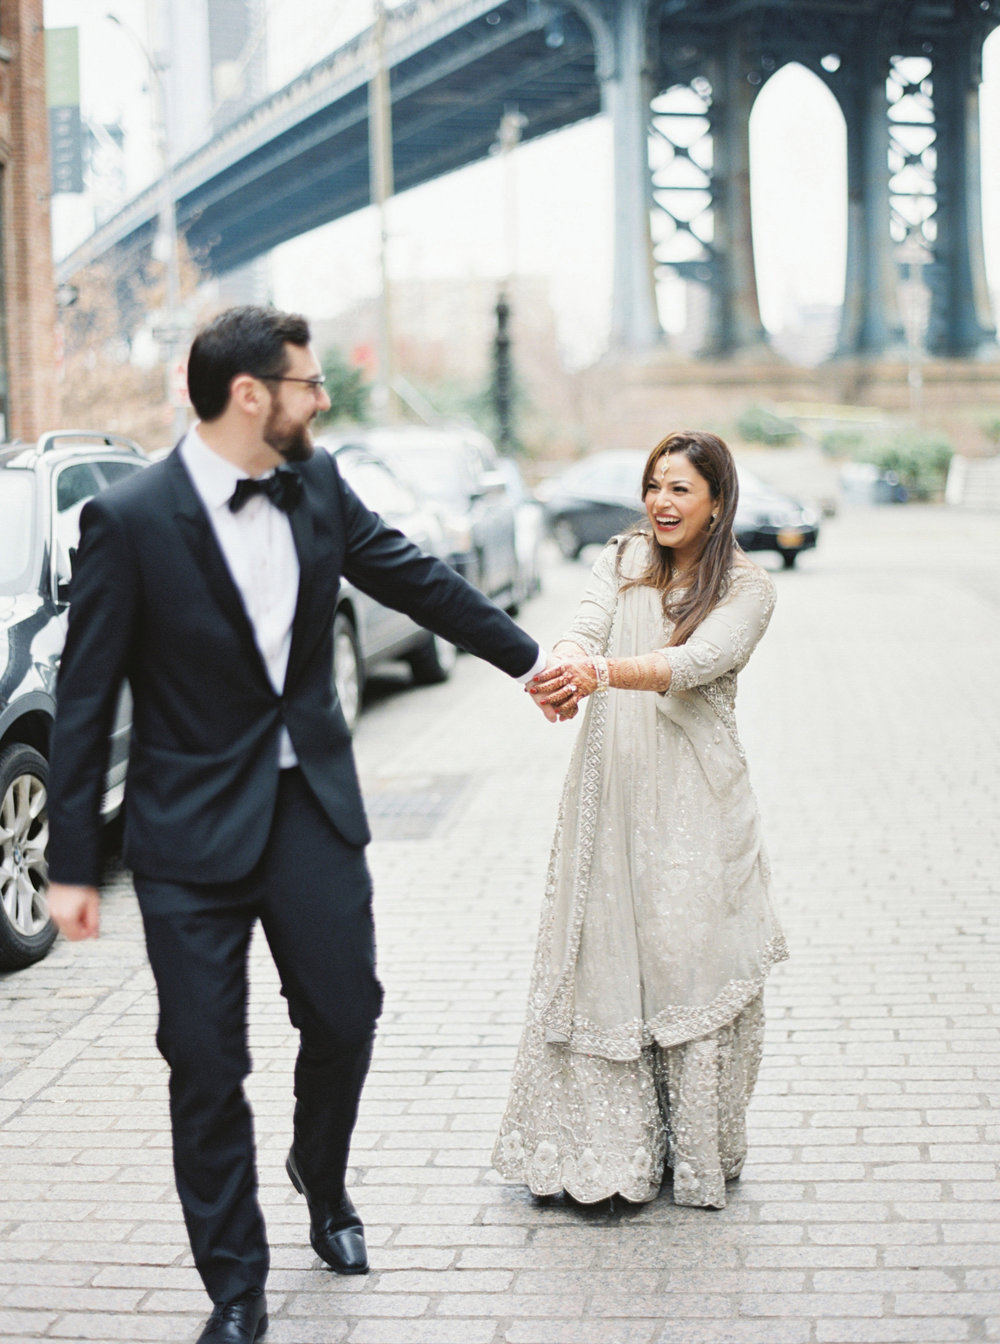 Fun Couple Portrait | Colorful & Sweet Brooklyn Wedding | The Green Building